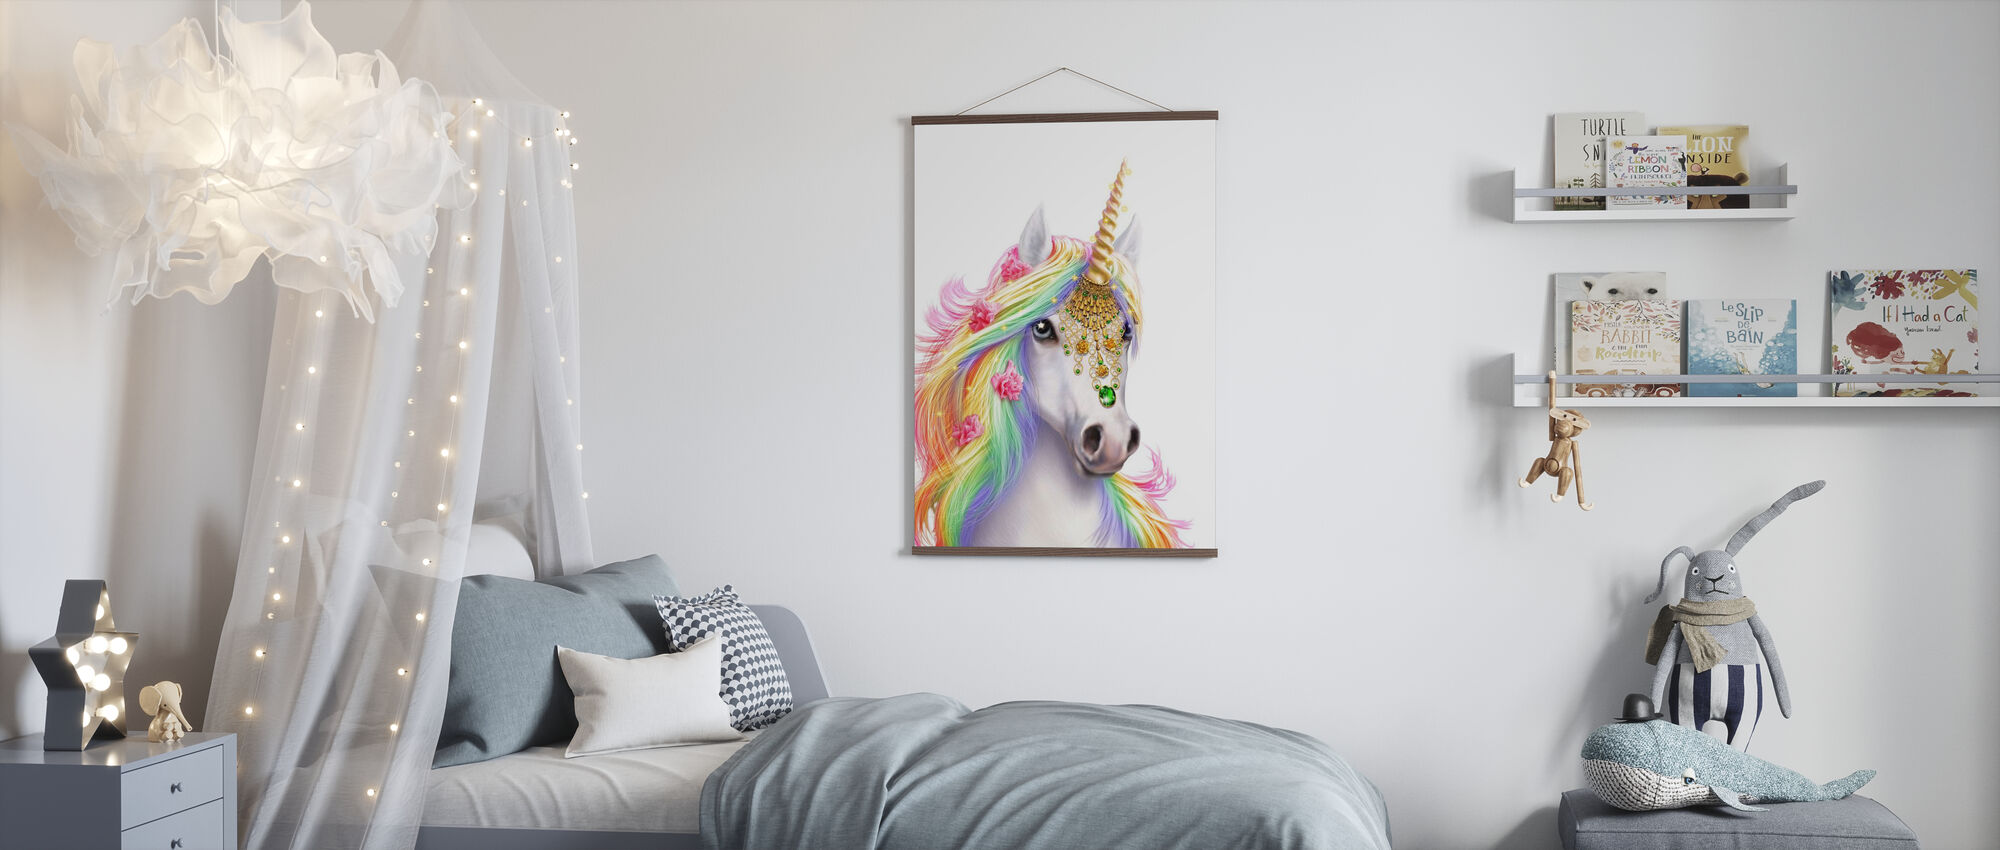 Unicorn - Poster - Kids Room